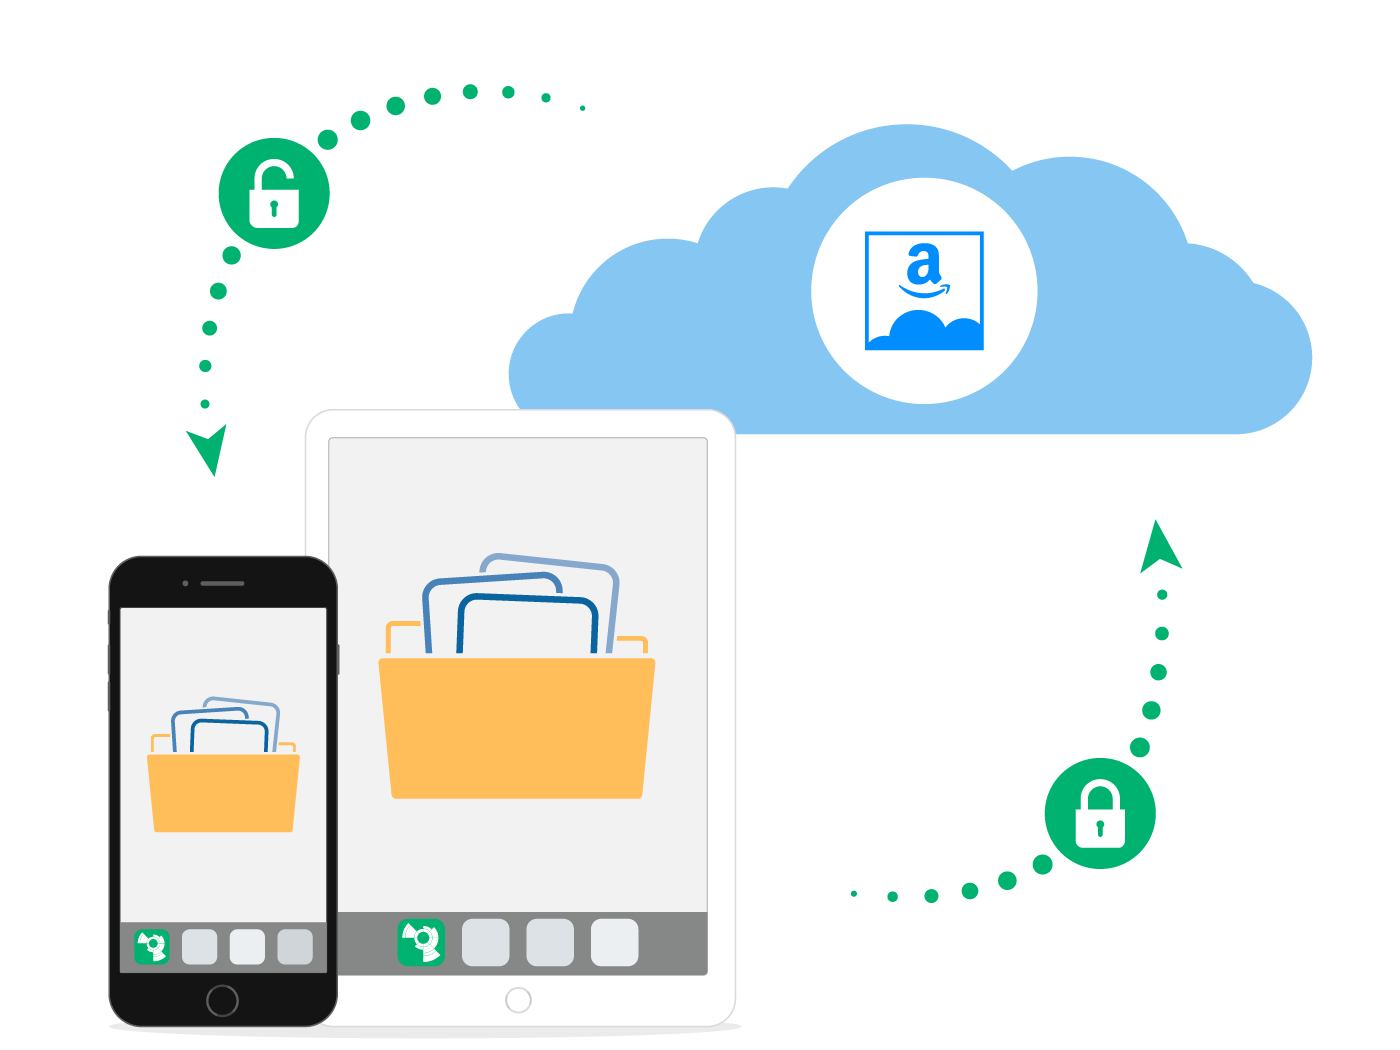 Use Boxcryptor with Mobile Devices to put your Encrypted Data on Amazon Drive